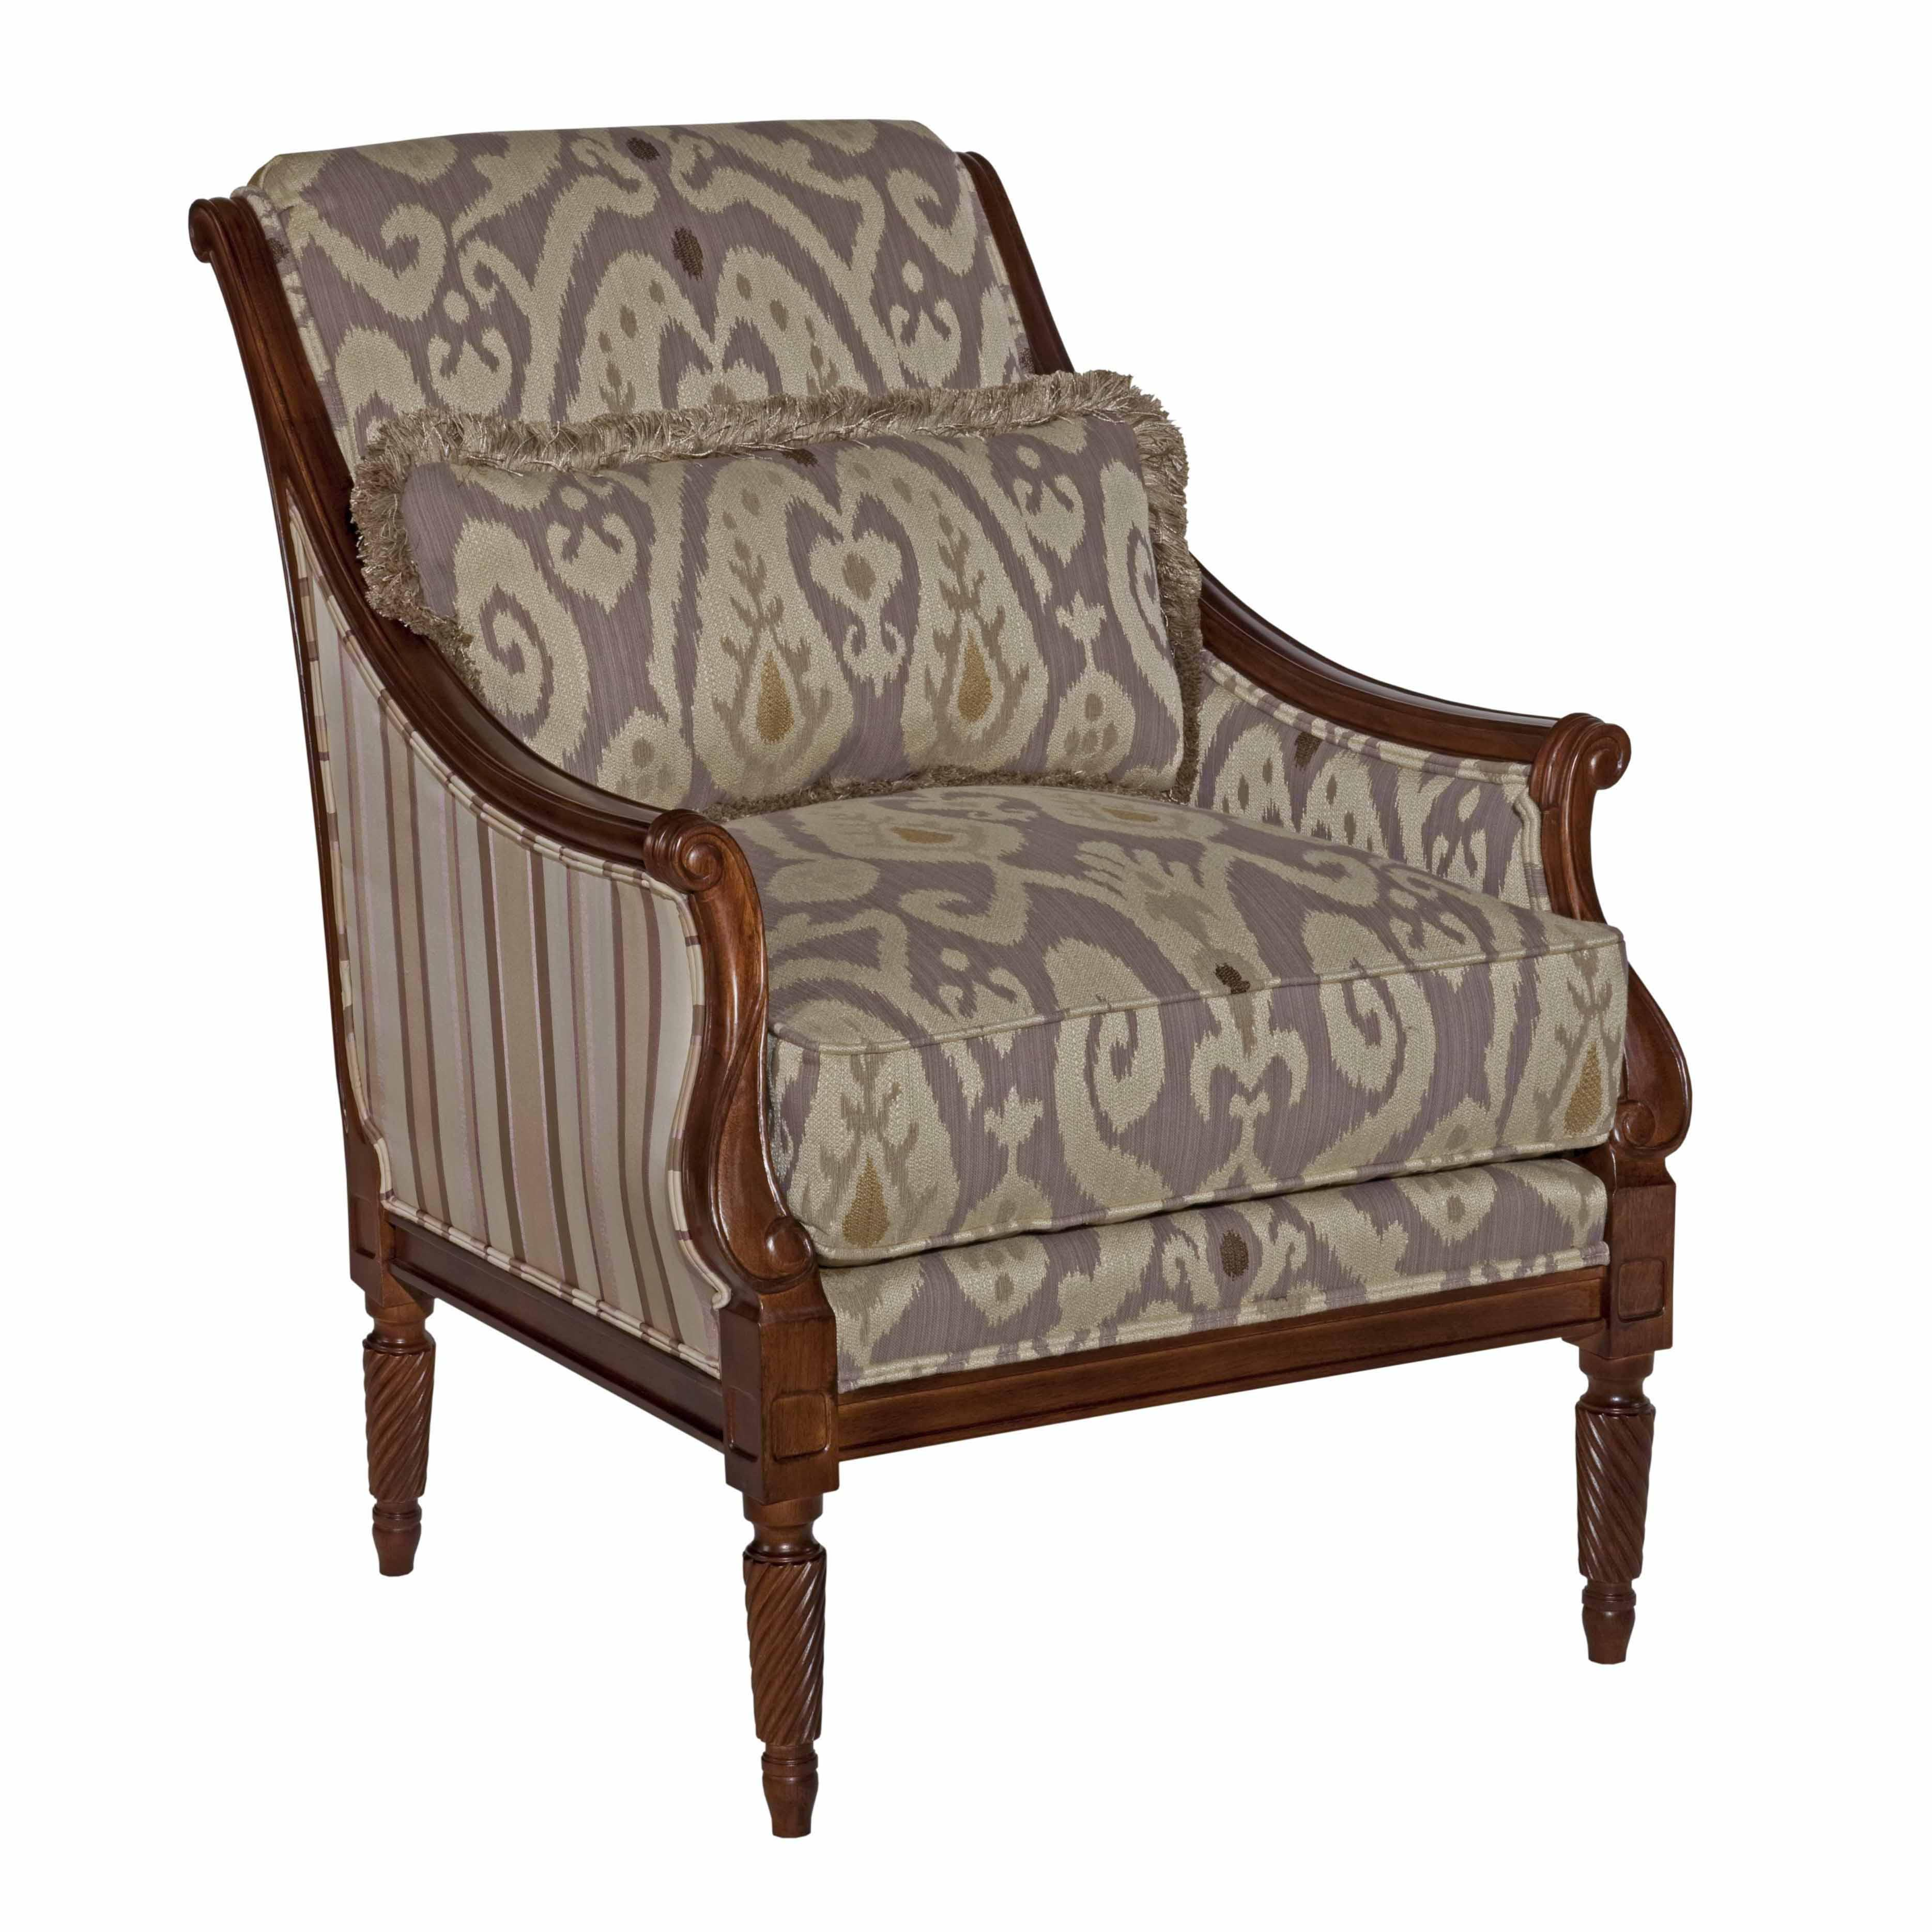 Kincaid furniture accent chairs wooden arm chair